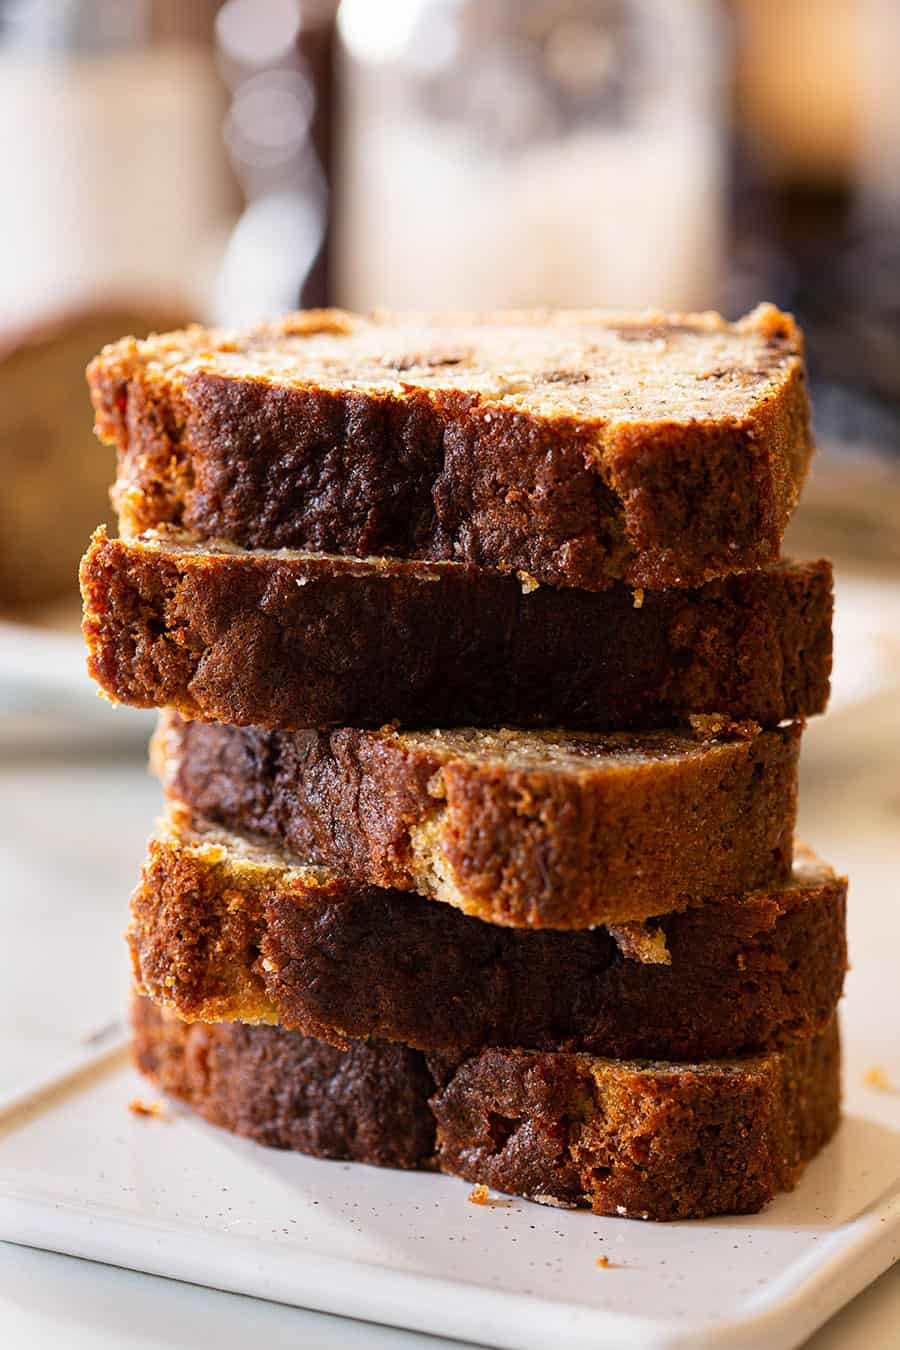 Chocolate chip banana bread cut into slices and piled on a white serving plate.